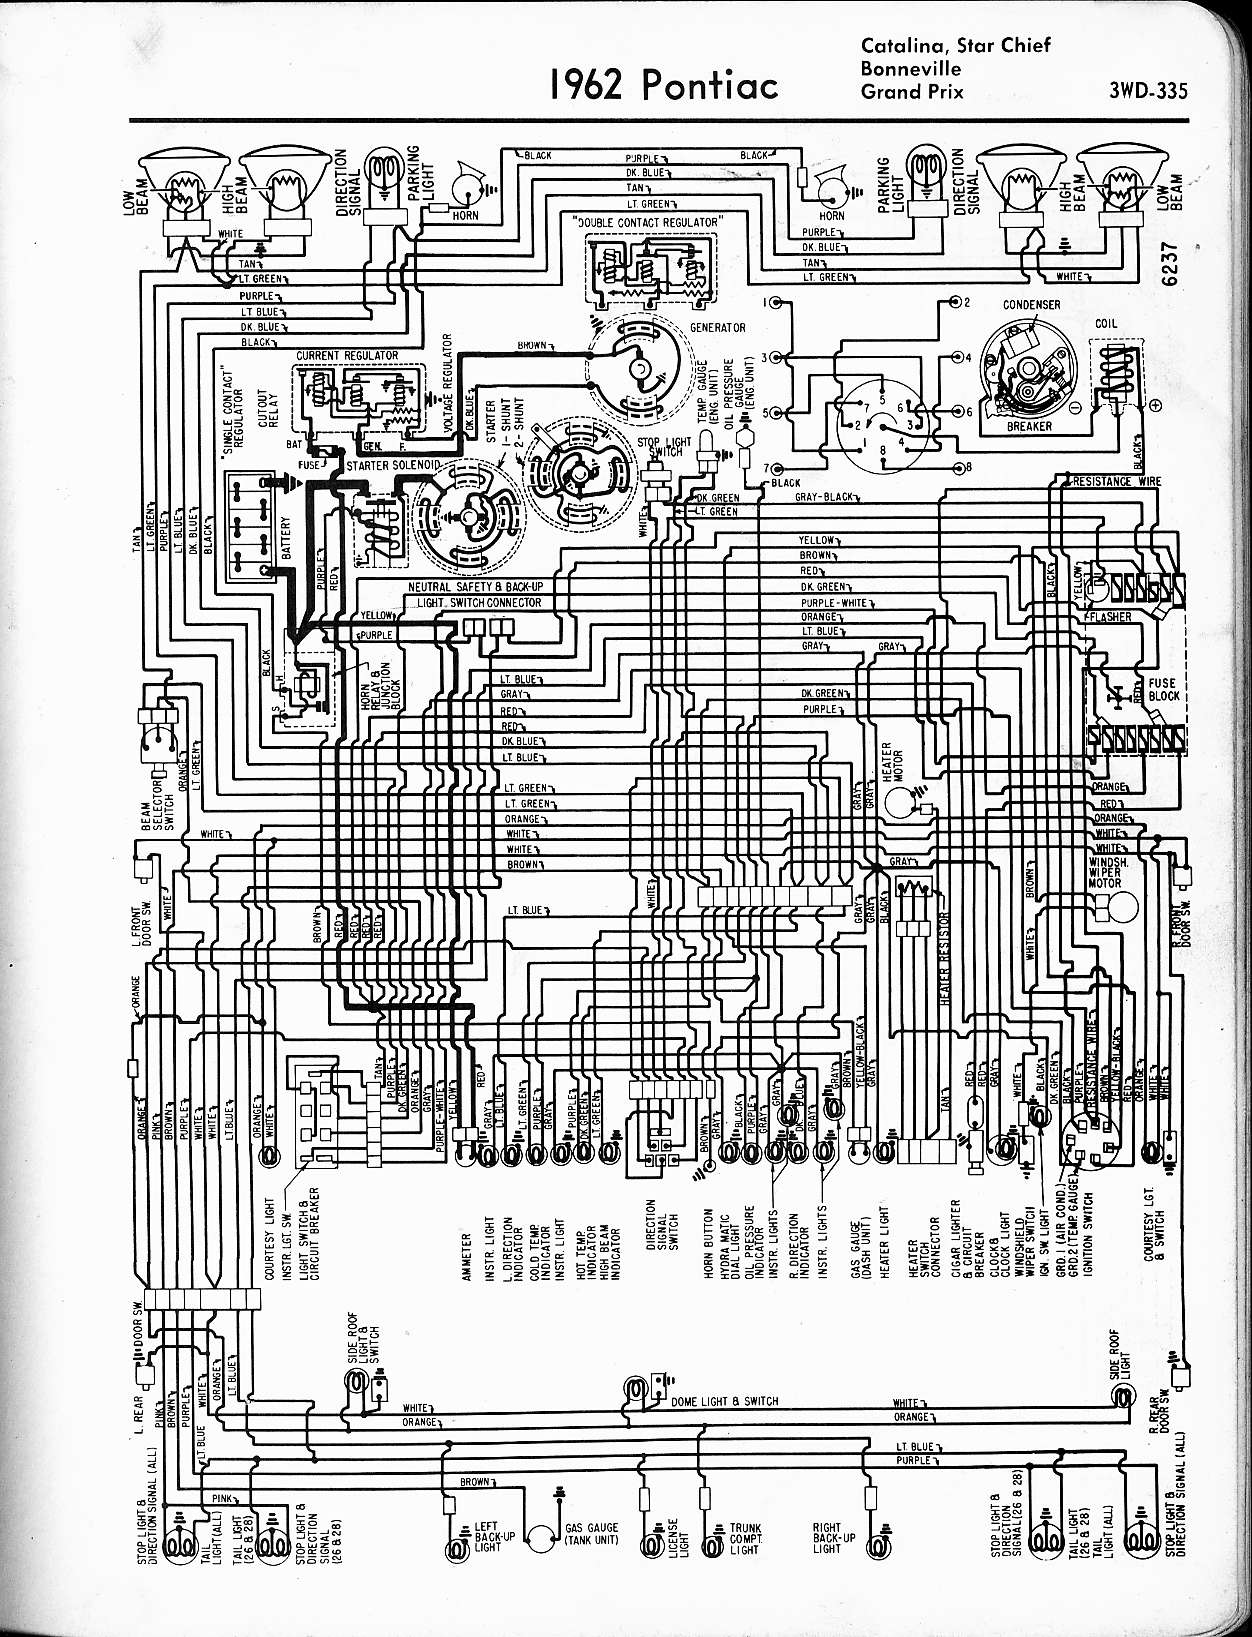 1966 Le Mans Wiring Diagram And Ebooks 1970 Mustang Schematic For Headlights Pontiac Lemans Simple Schema Rh 40 Aspire Atlantis De Nova